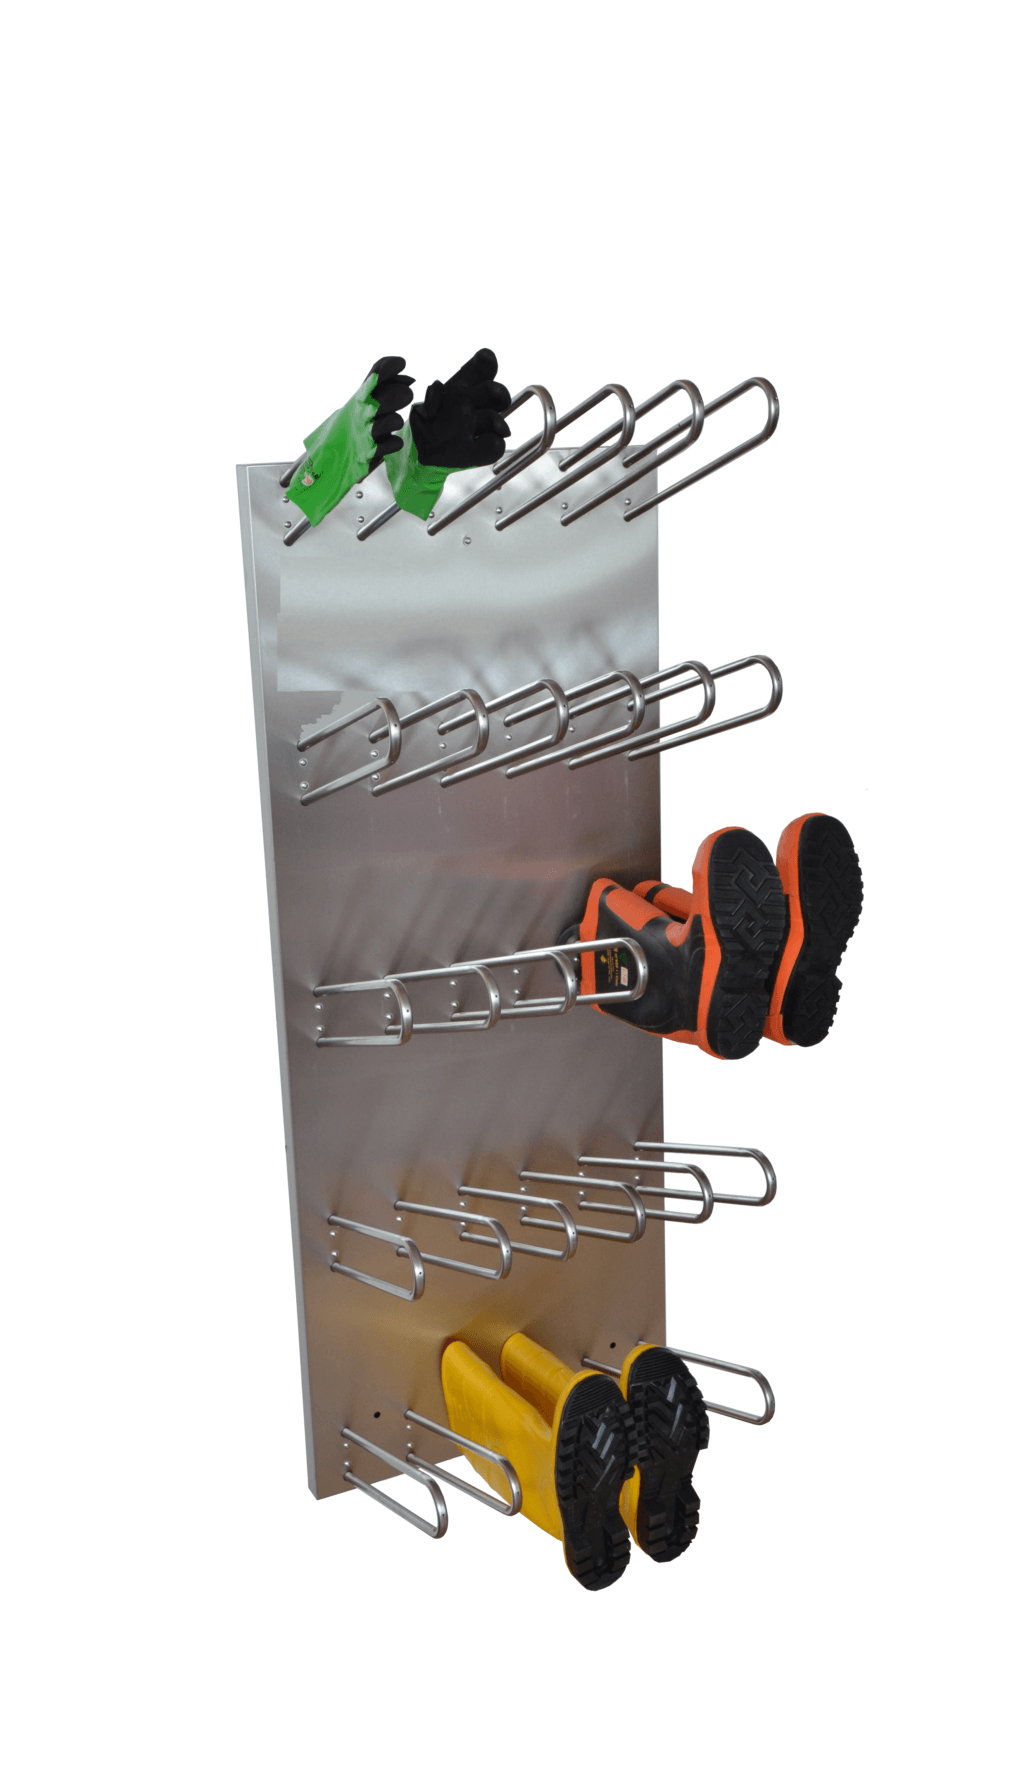 Electrical professional drying system for boots, shoes and gloves